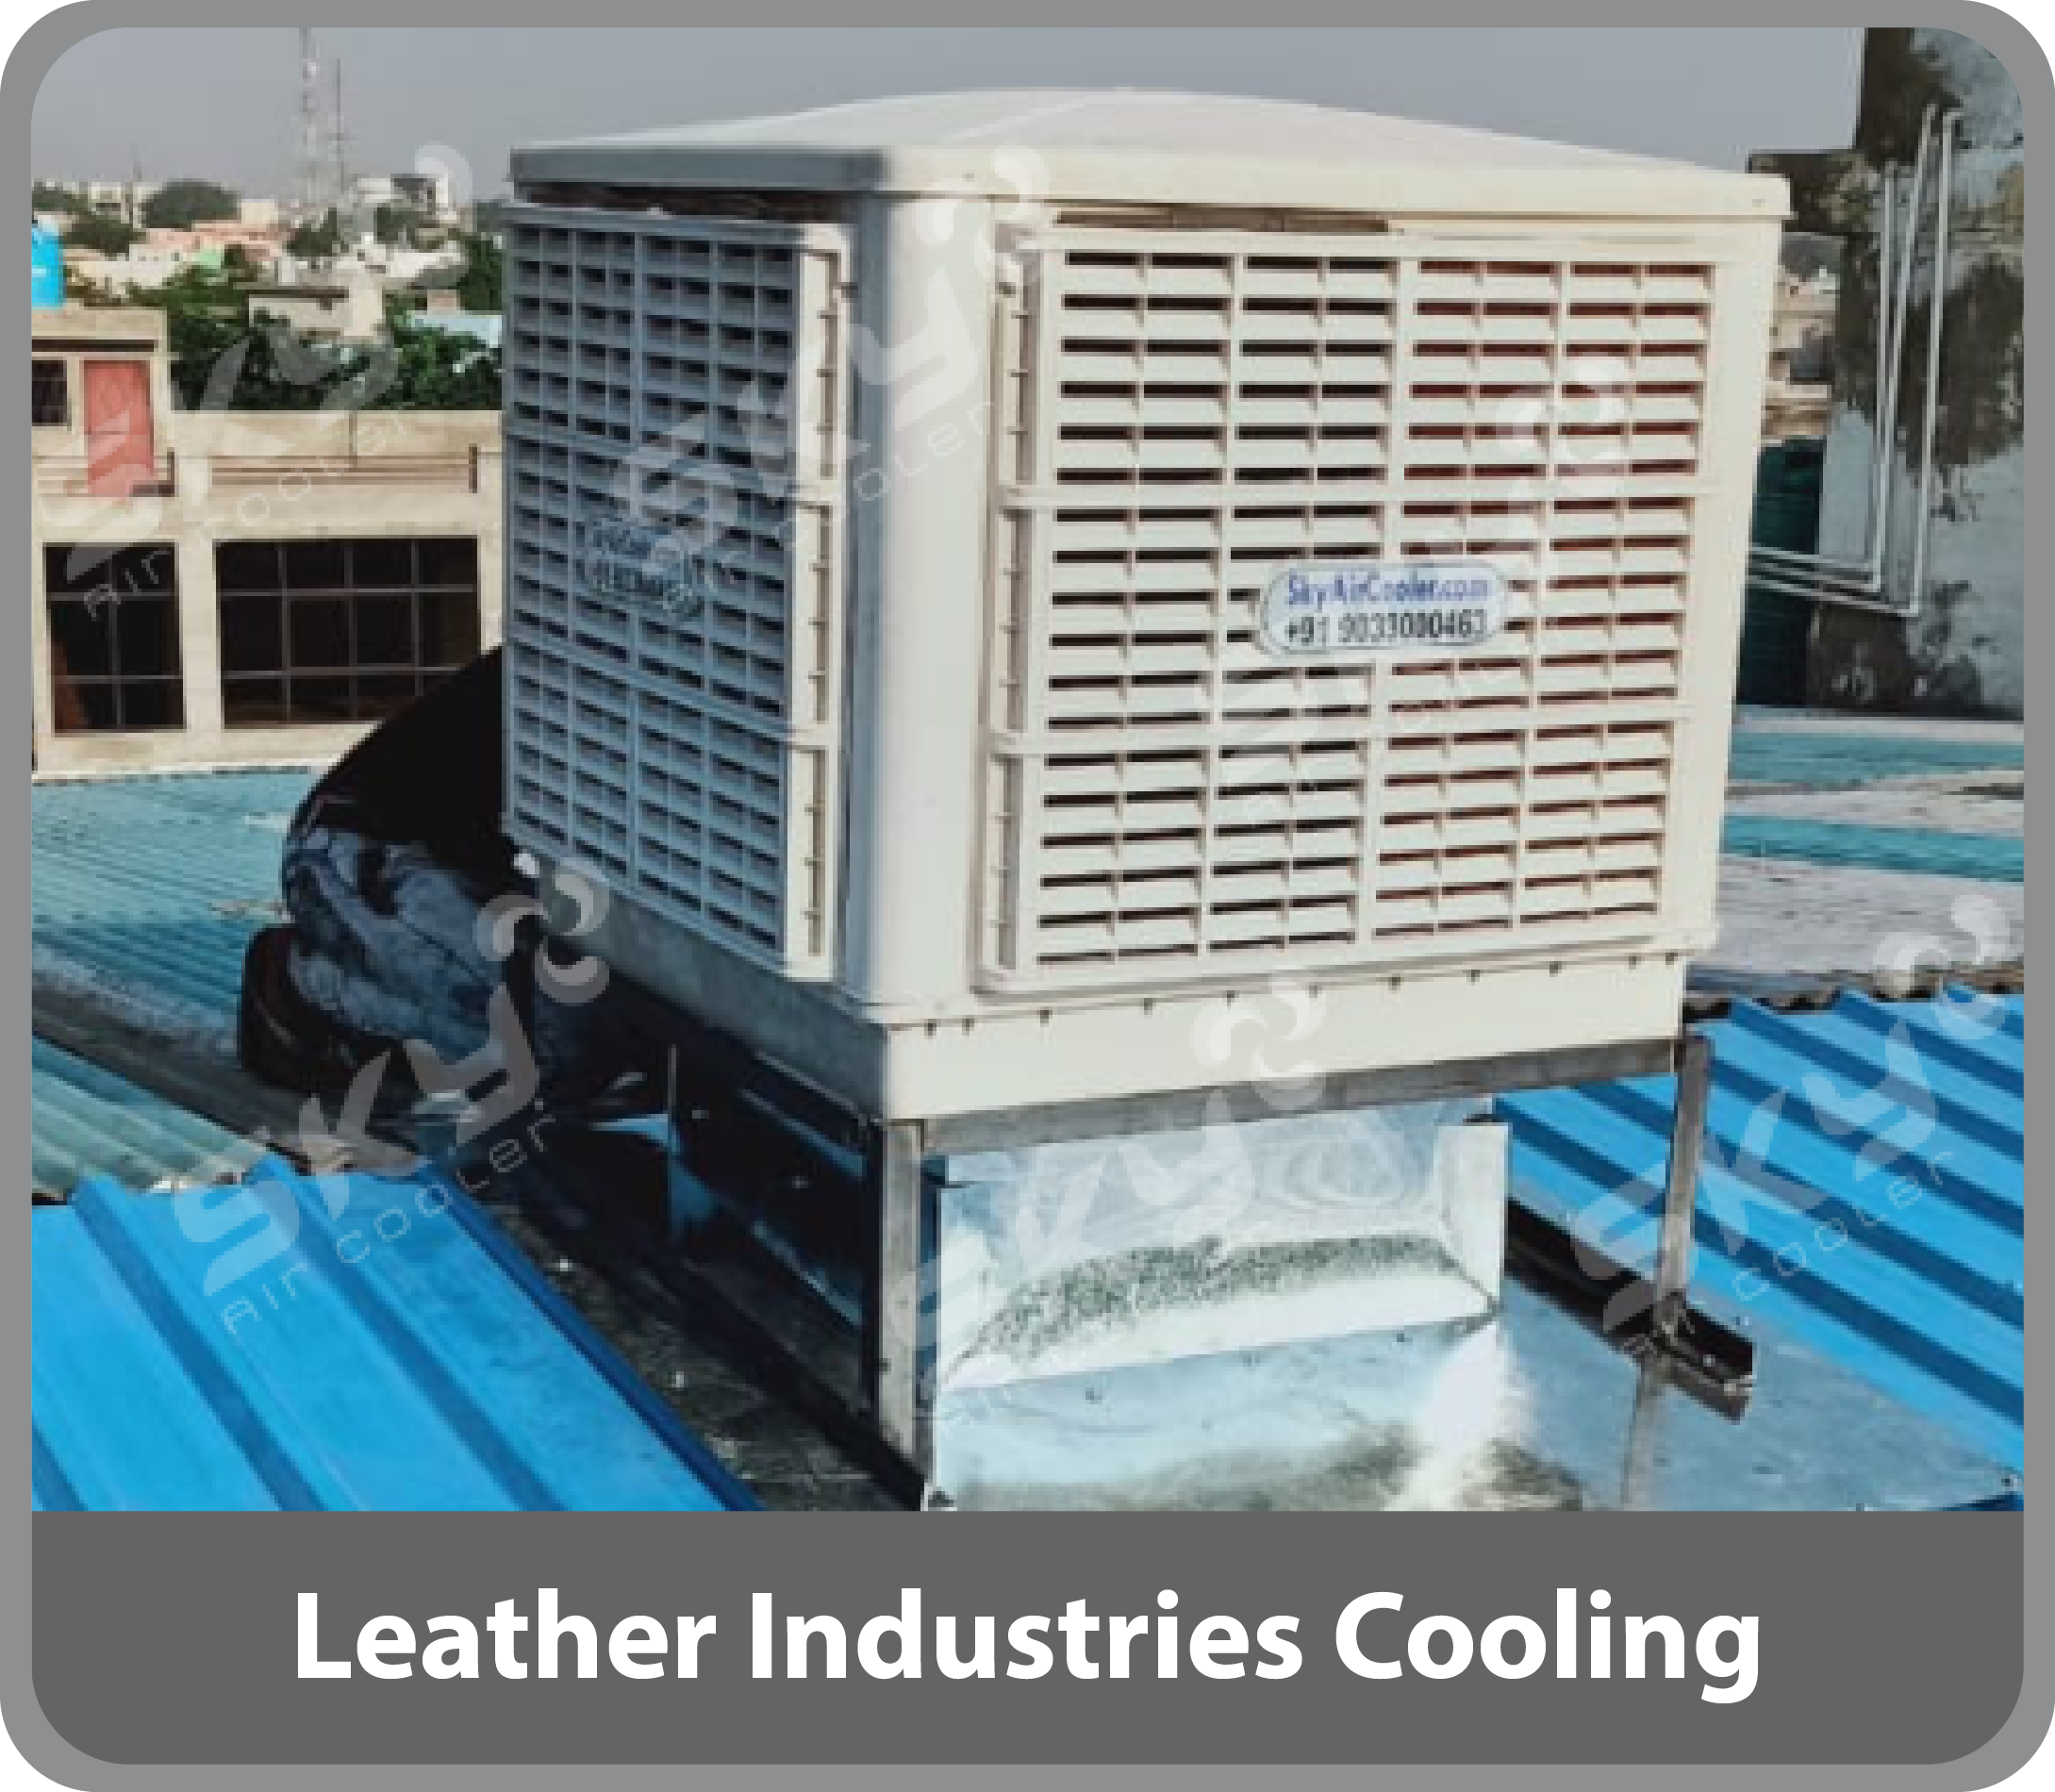 Leather Industries Cooling